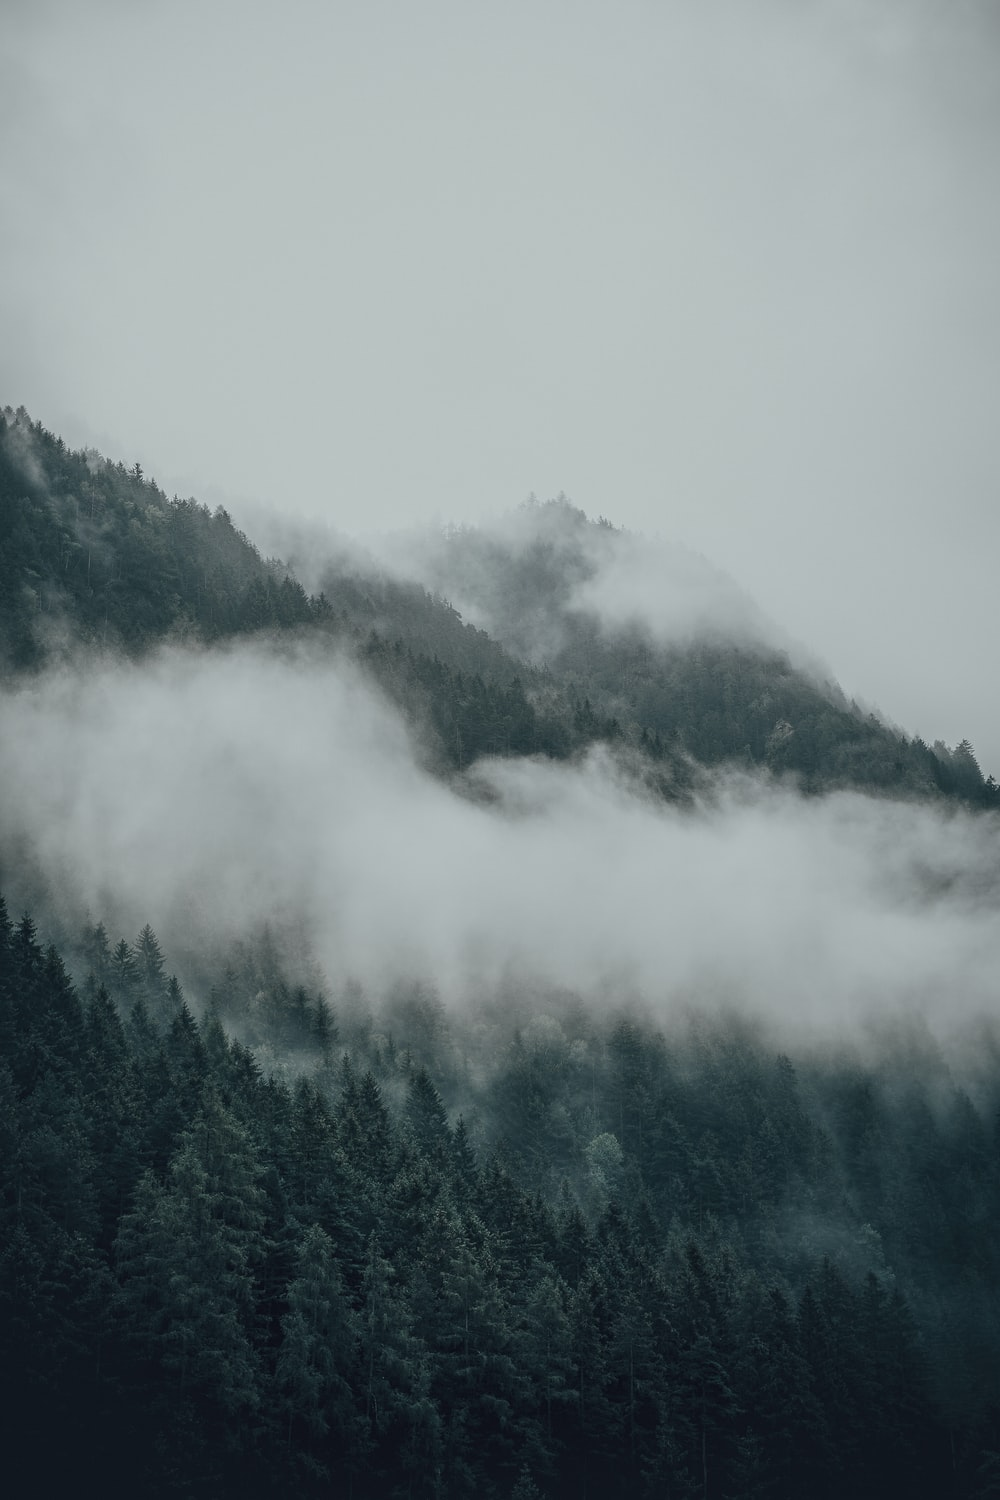 mountain with trees and cloudy sky